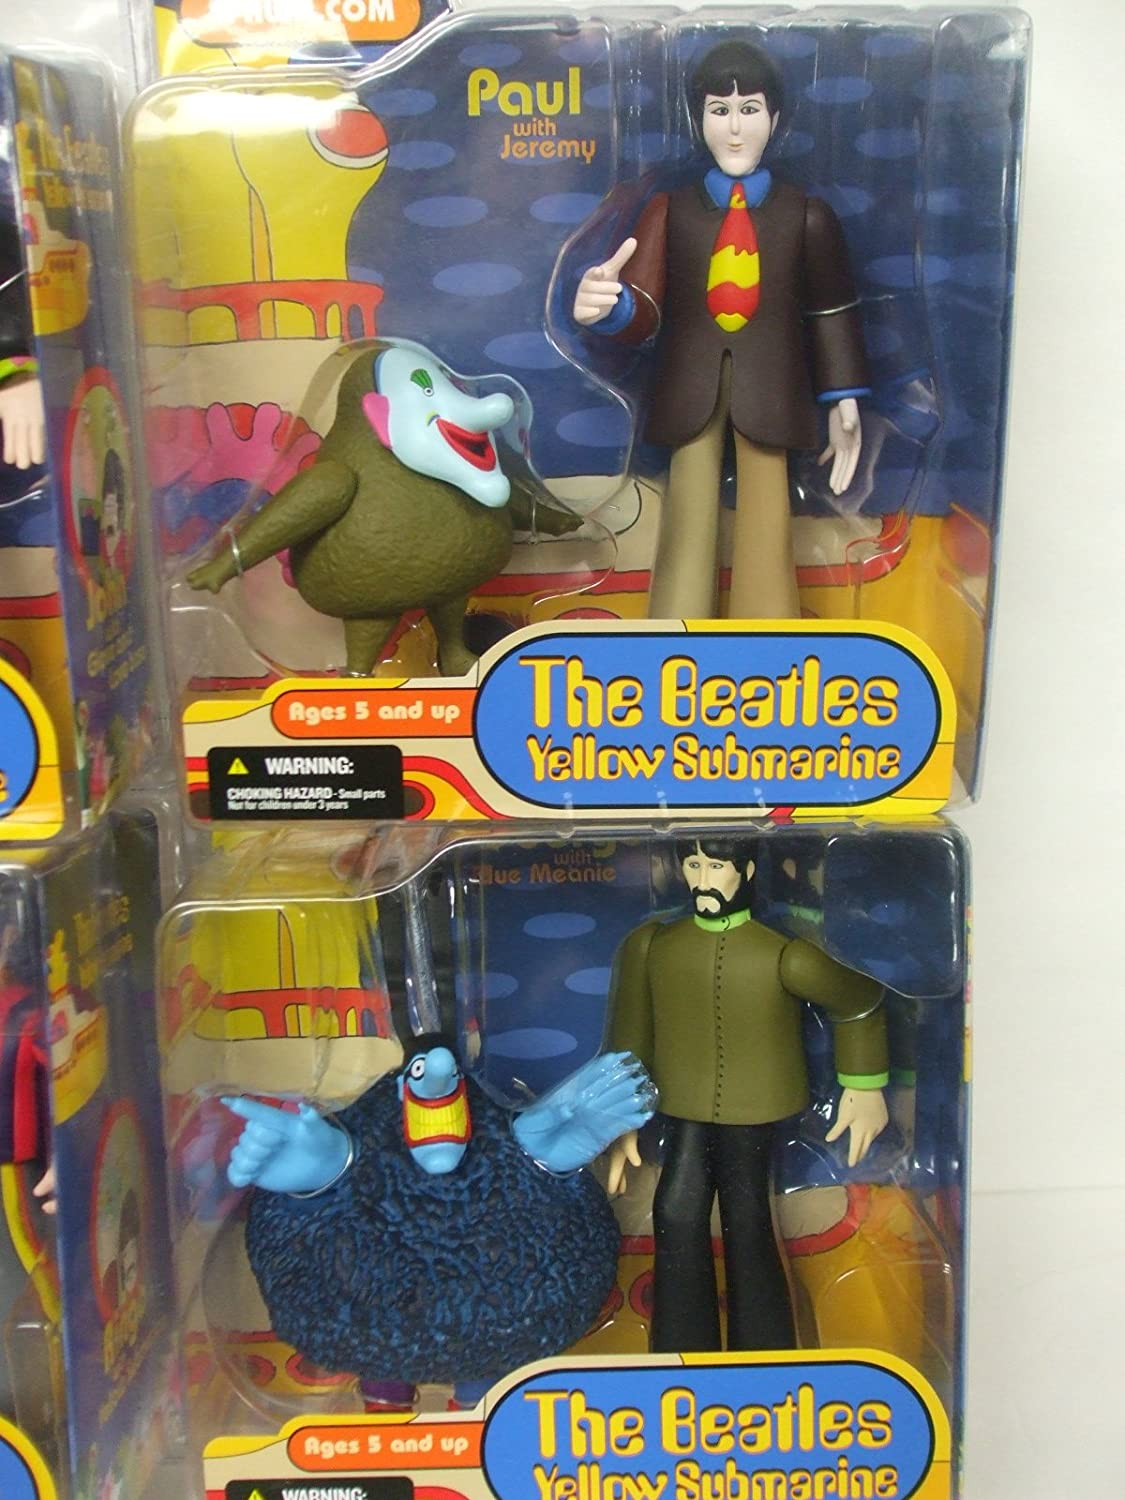 Yellow Submarine Animated Series 2nd Version Figures in Blister Packages Mc Farlane Toys McFarlane Toys The Beatles